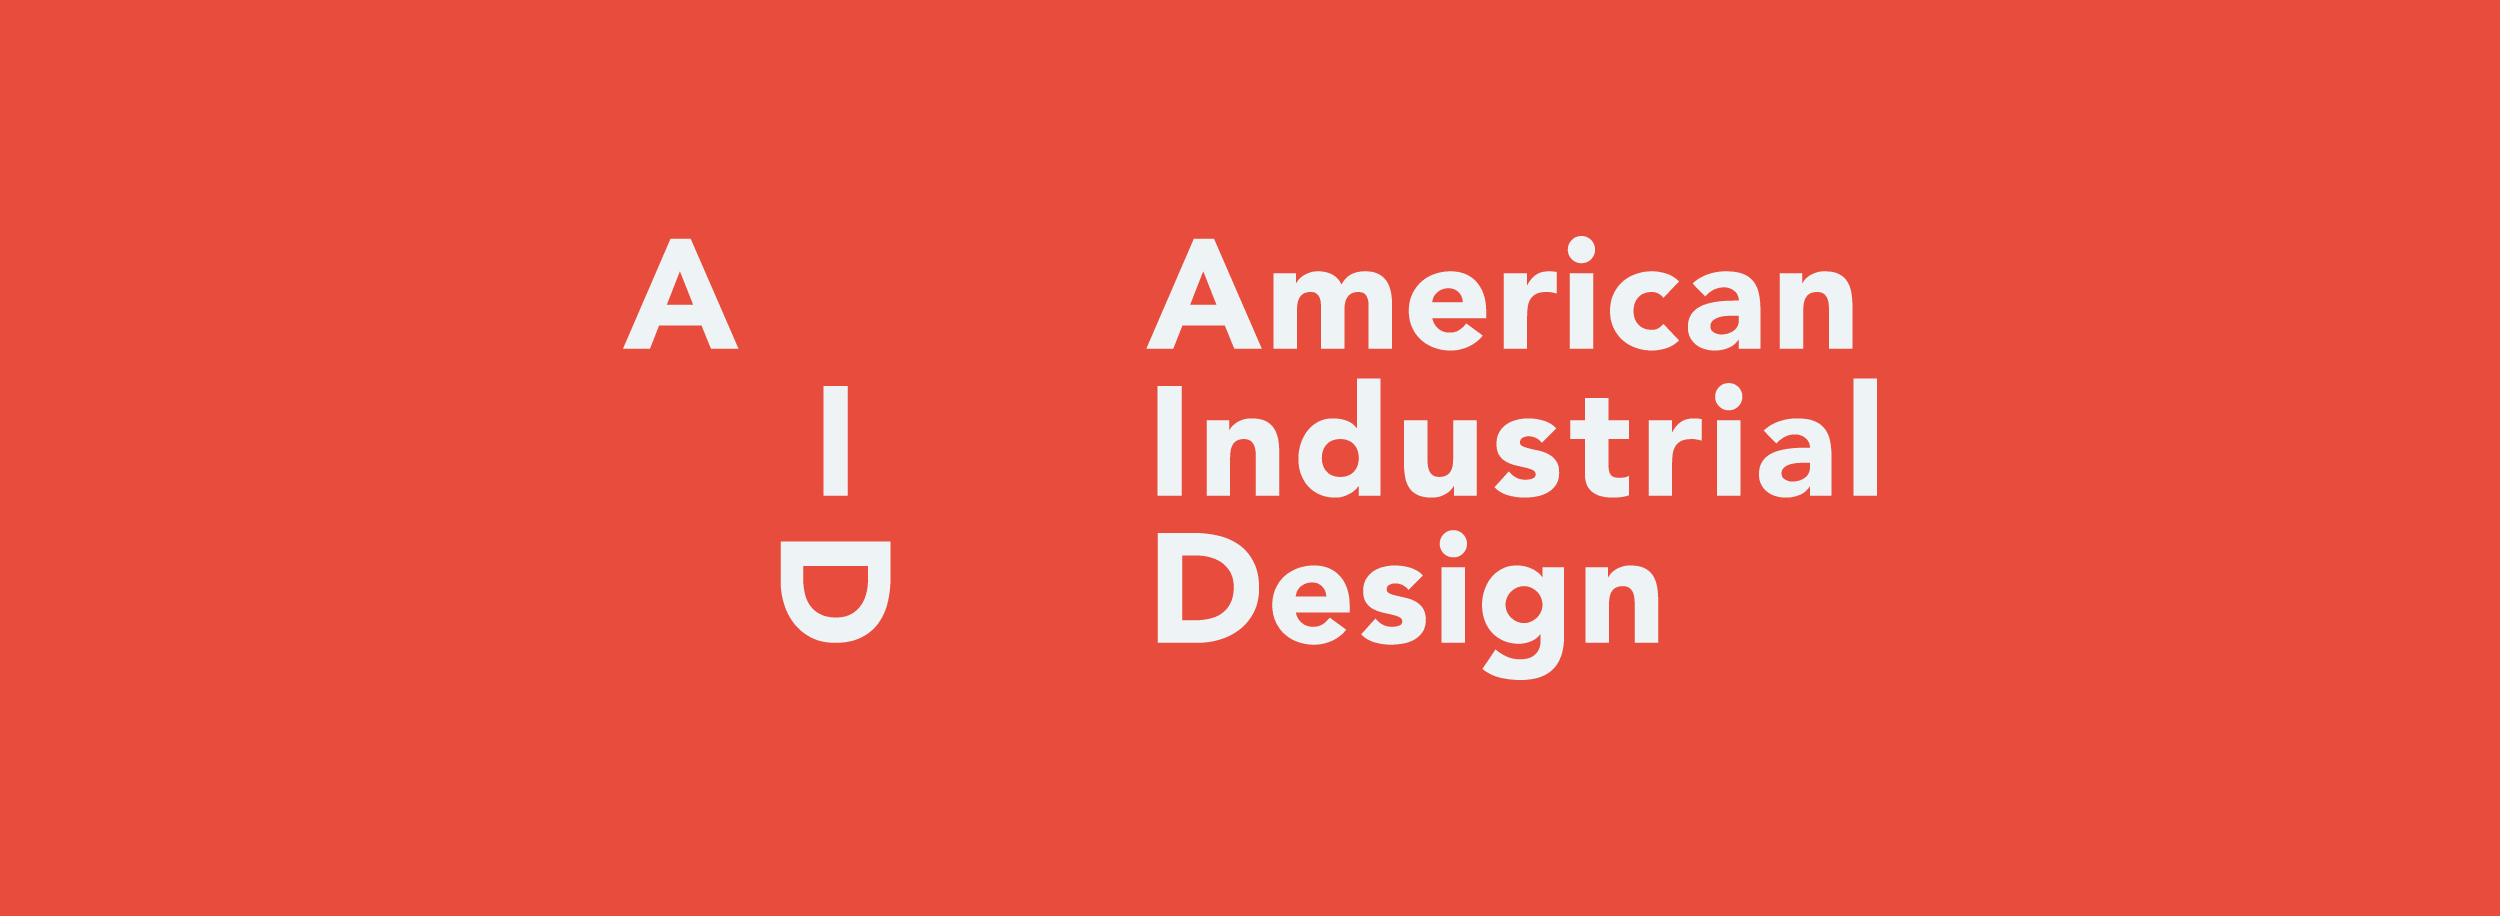 Playful type-based logo for American Industrial Design: sans serif letters A, I and D form a face in a subtle and creative way. © LET'S PANDA